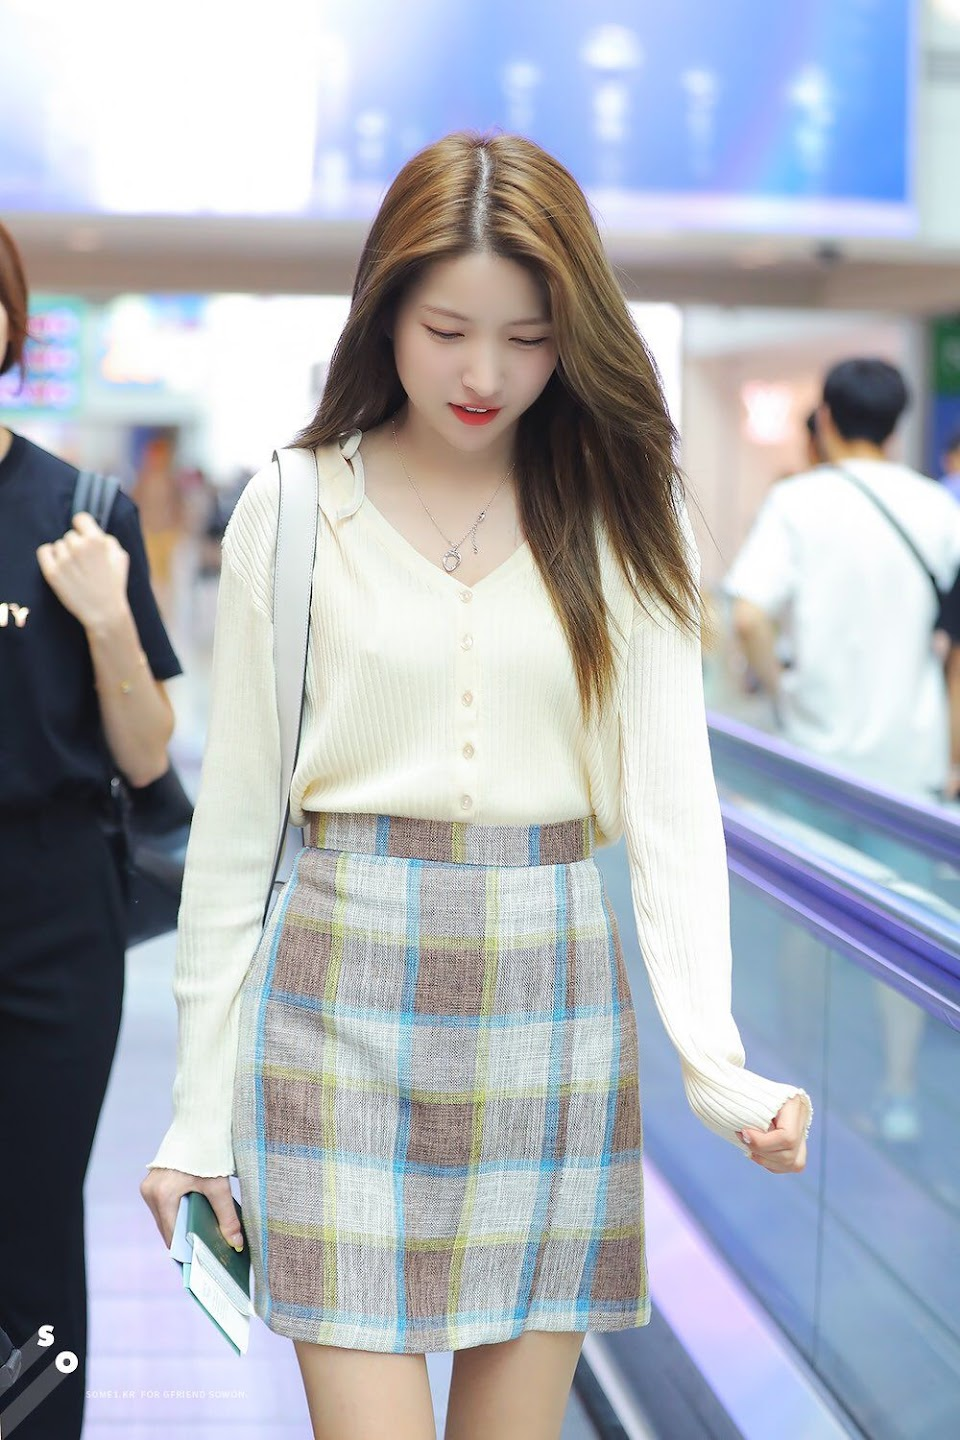 sowon casual 4